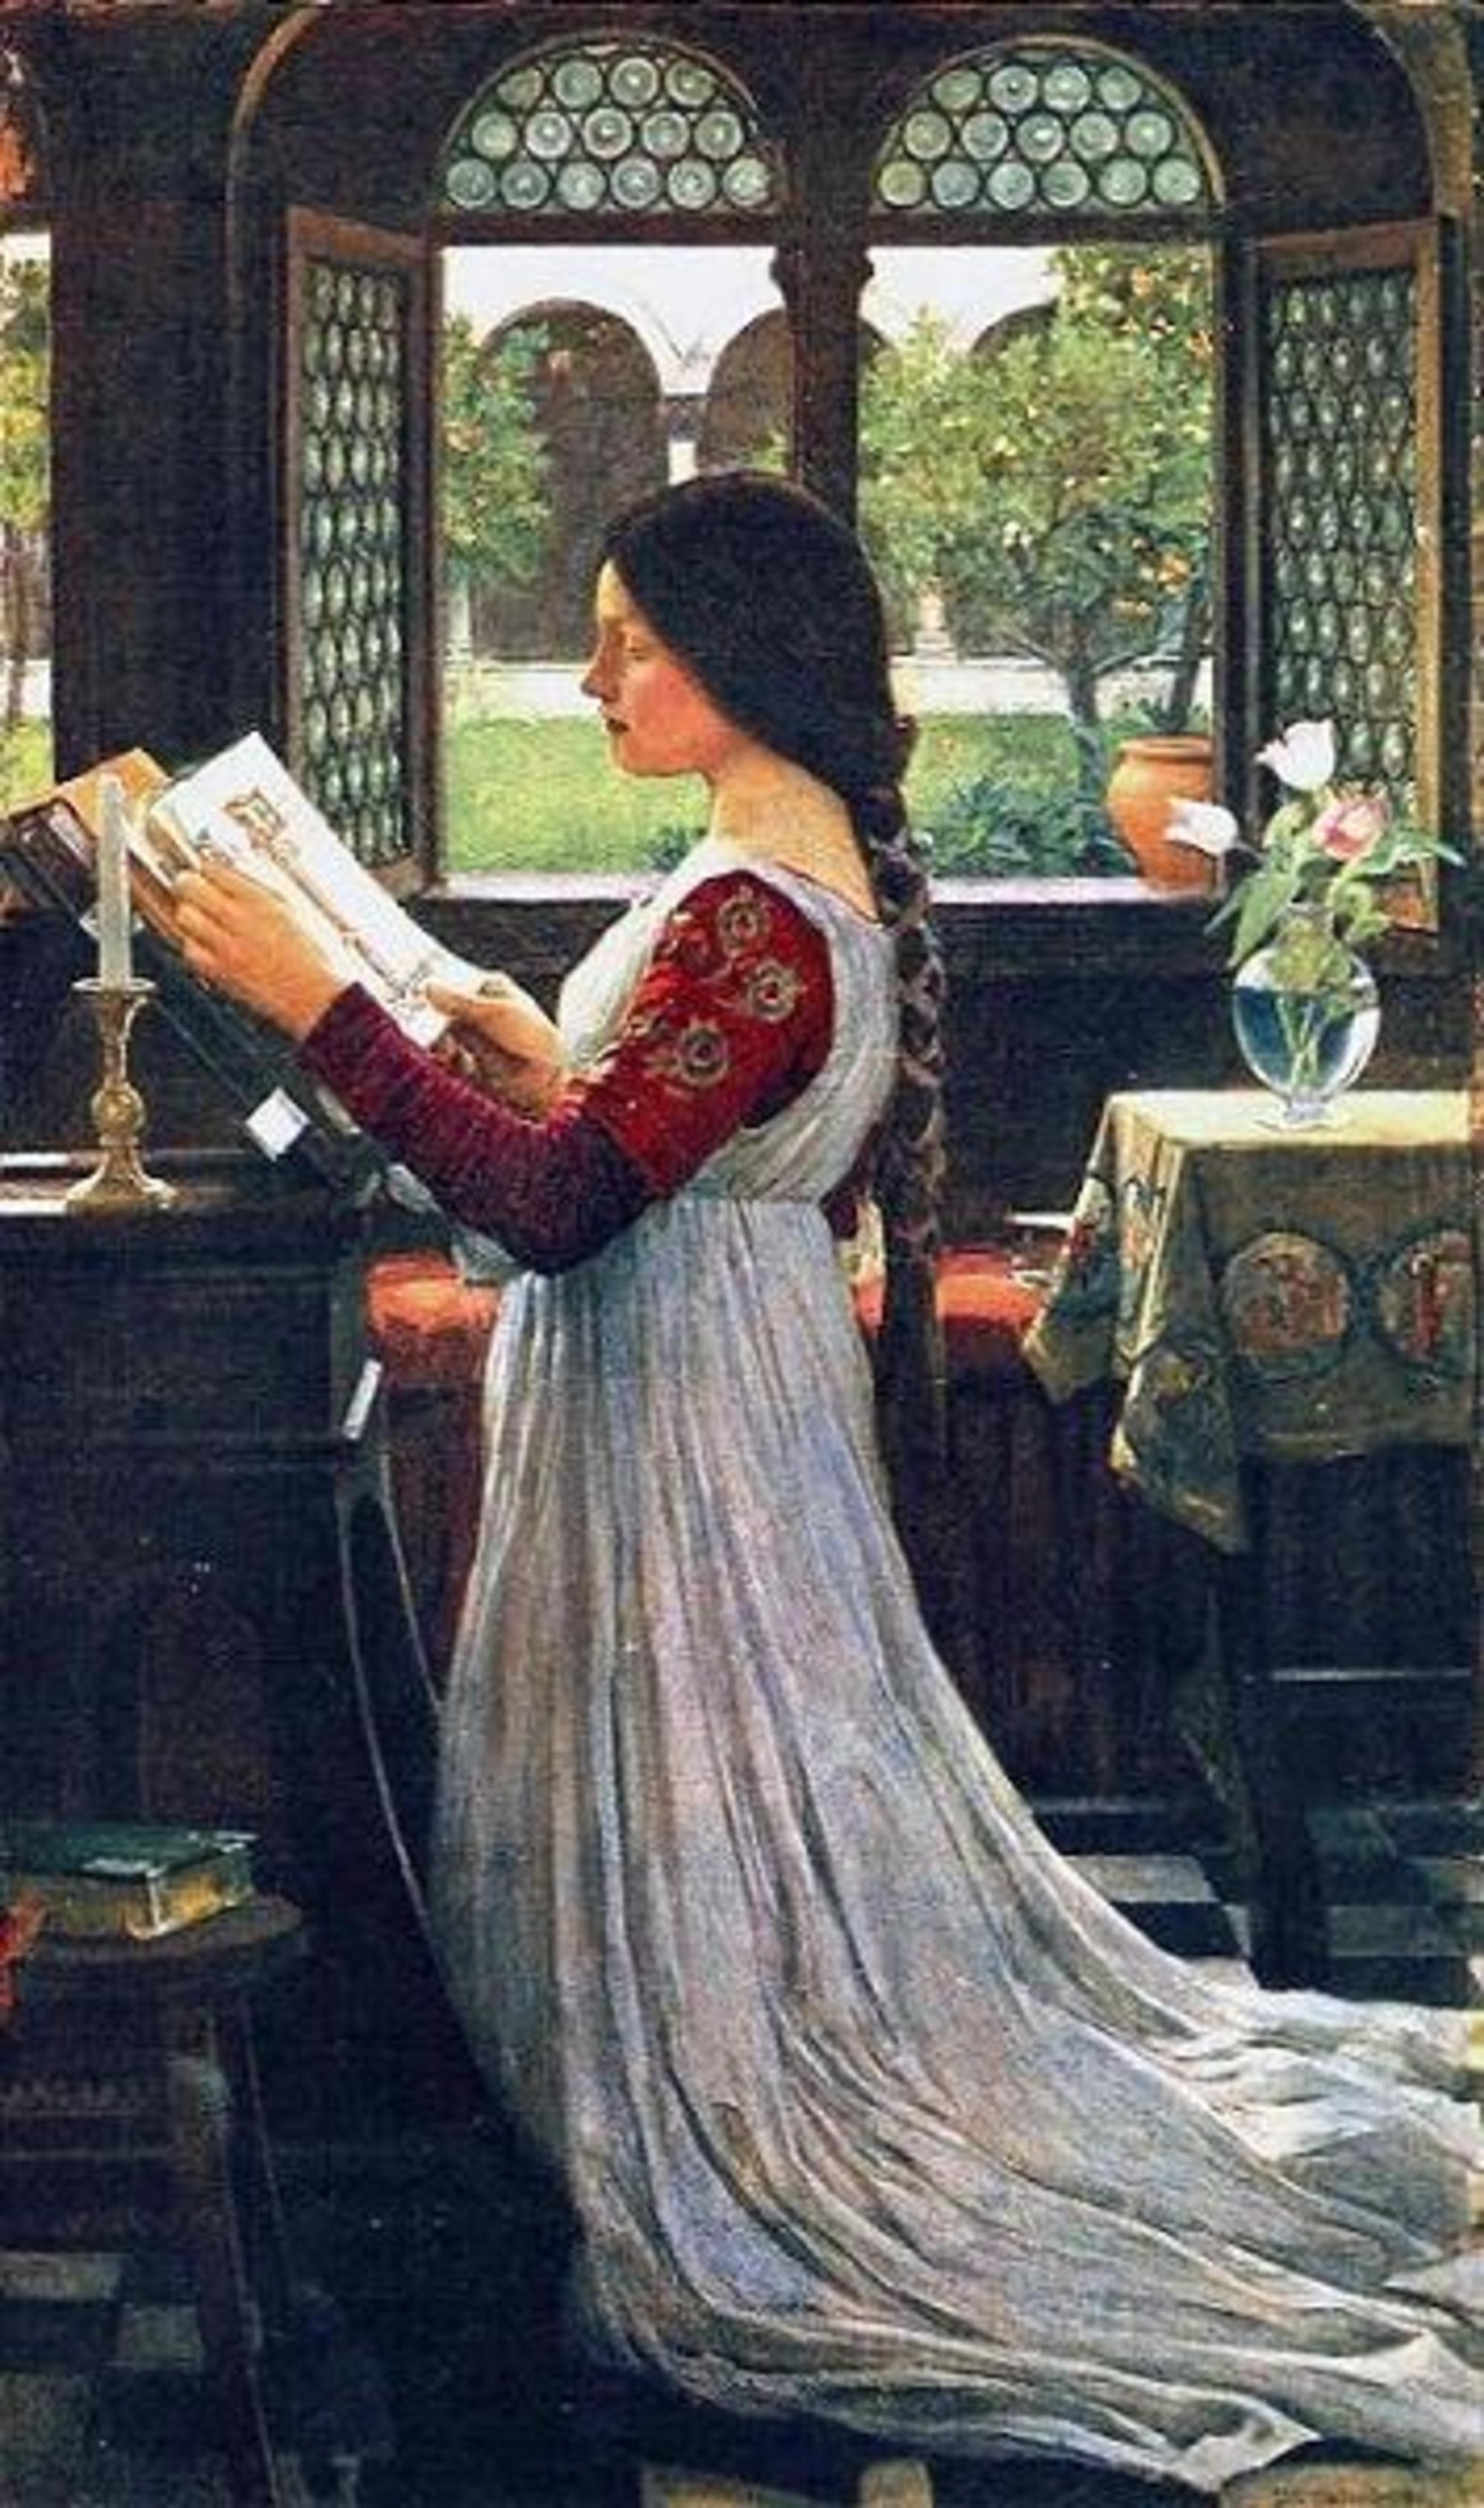 John_William_Waterhouse_-_The_Missal.jpg